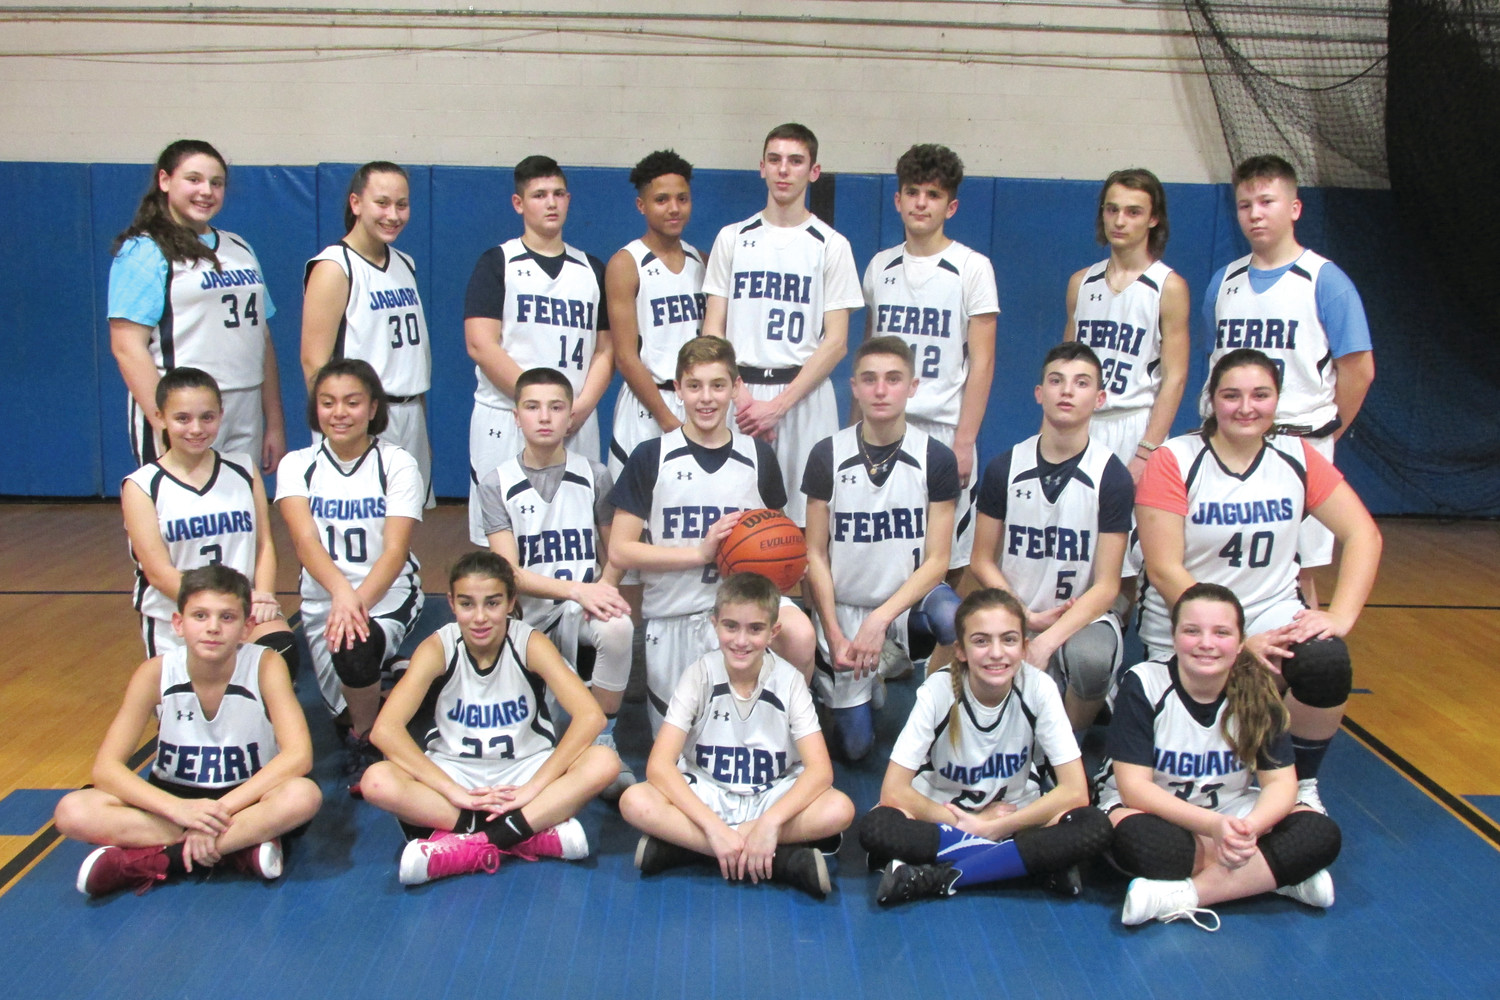 BRIAN'S BUNCH: The White Team was coached by Brian Iafrate in Tuesday's 3rd Annual Toys for Tots Scrimmage inside Nicholas A. Ferri Middle School.